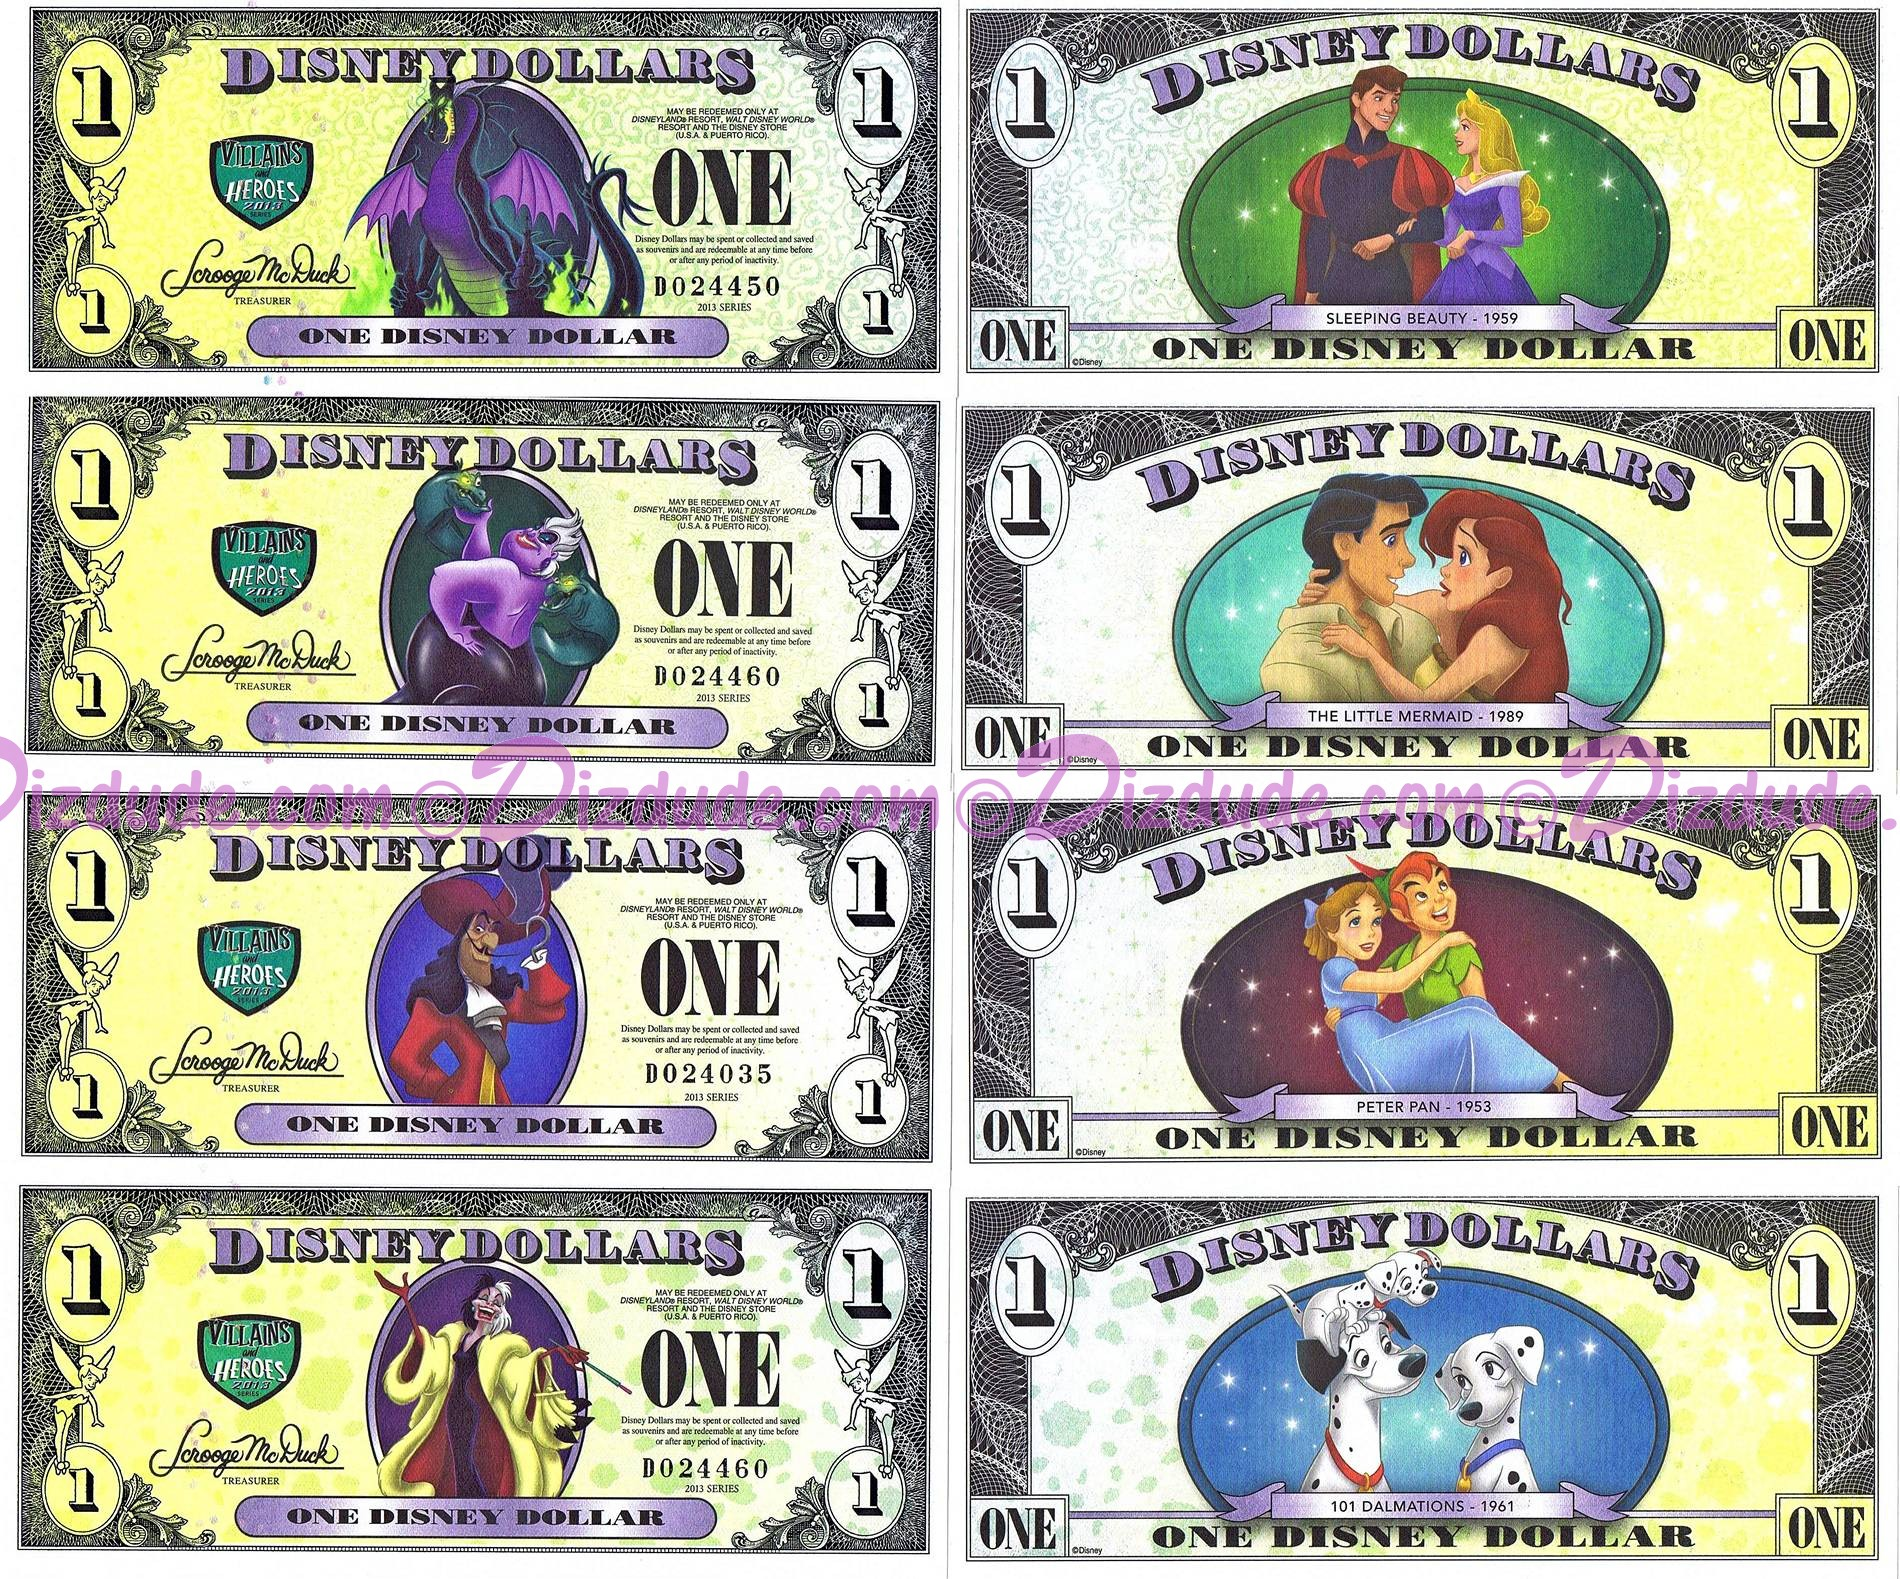 ERROR SET - Full set of all 4 Villains and Heroes Commerative 2013 series Disney Dollars back and fronts ~ © DIZDUDE.com